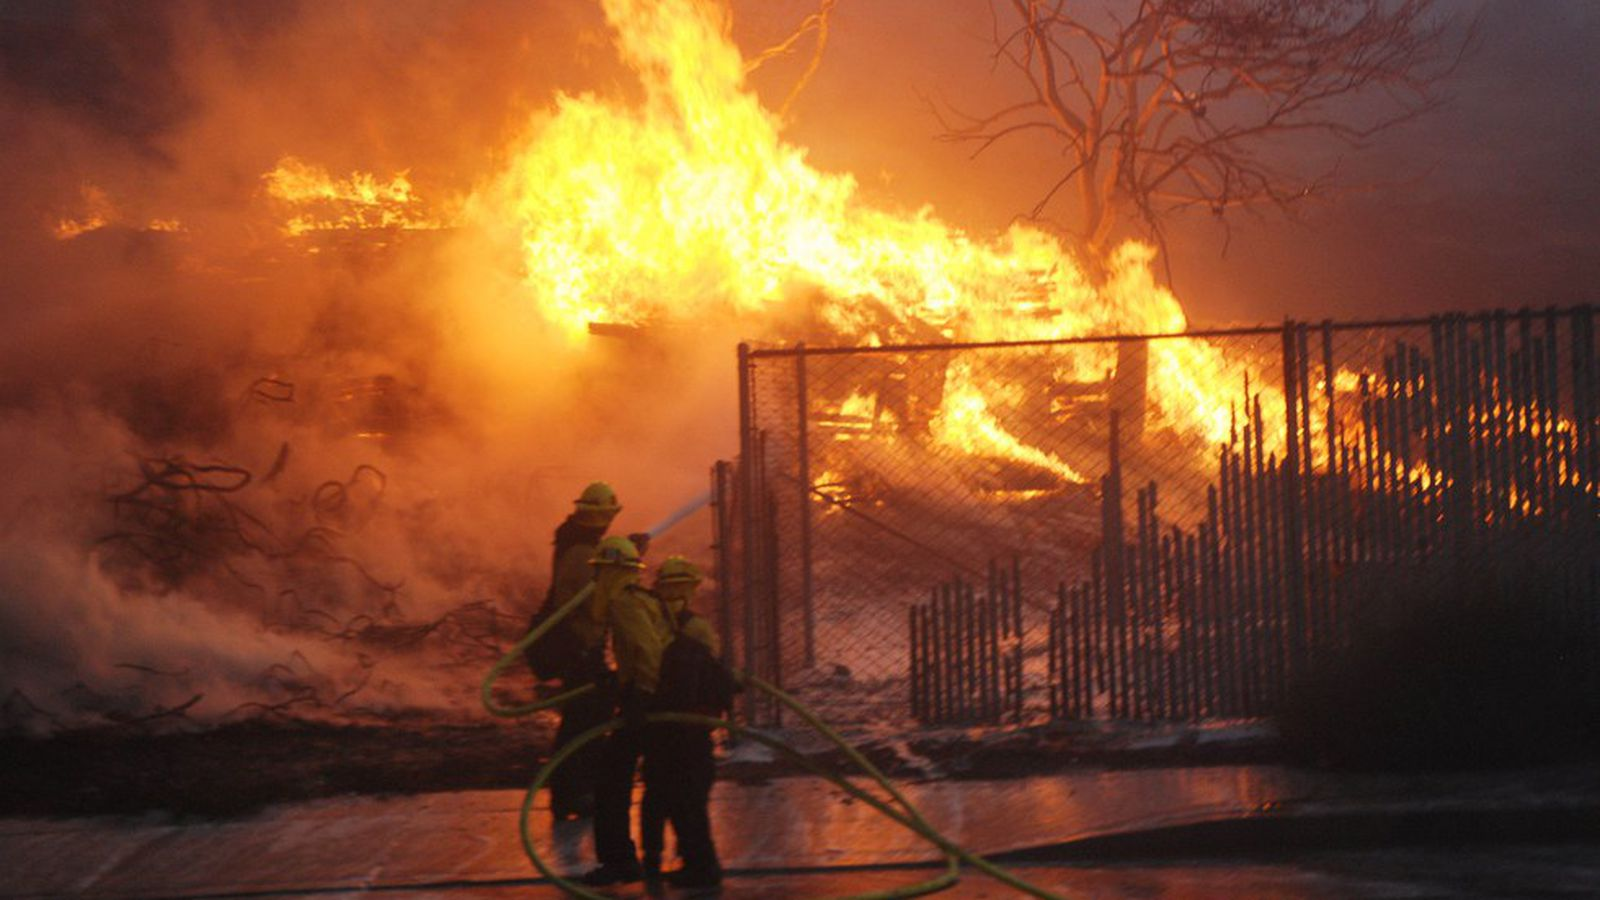 da161fe1 California inmates fighting the record wildfires are likely to be ...